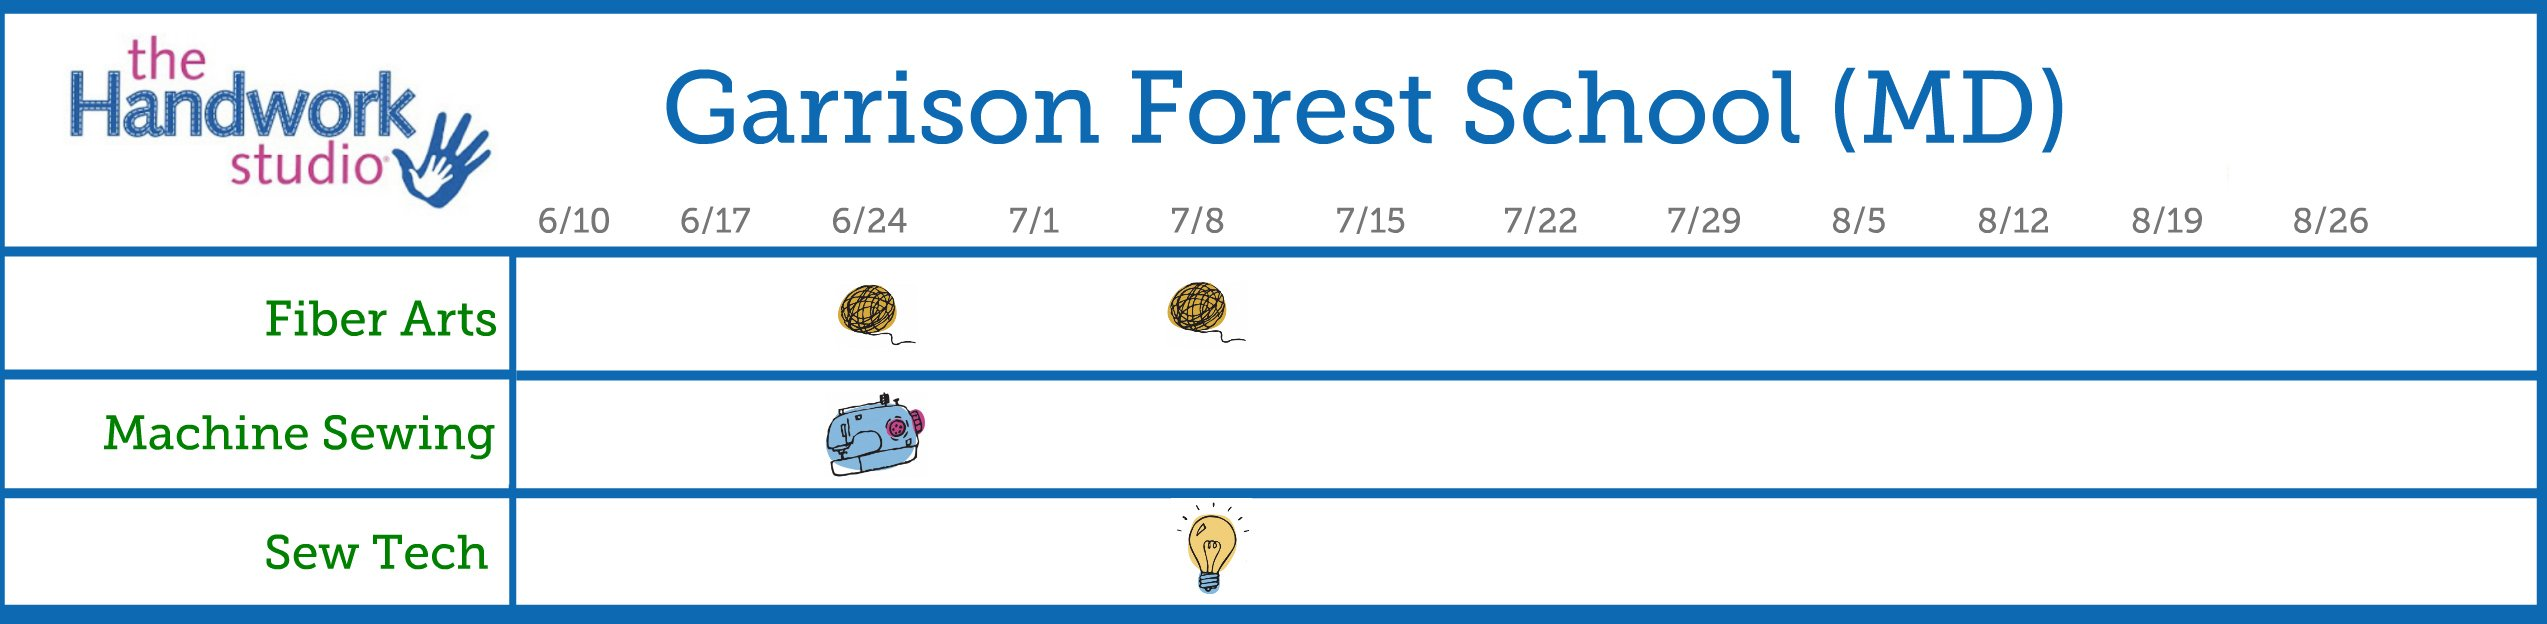 Garrison Forest School Program Schedule 2.0